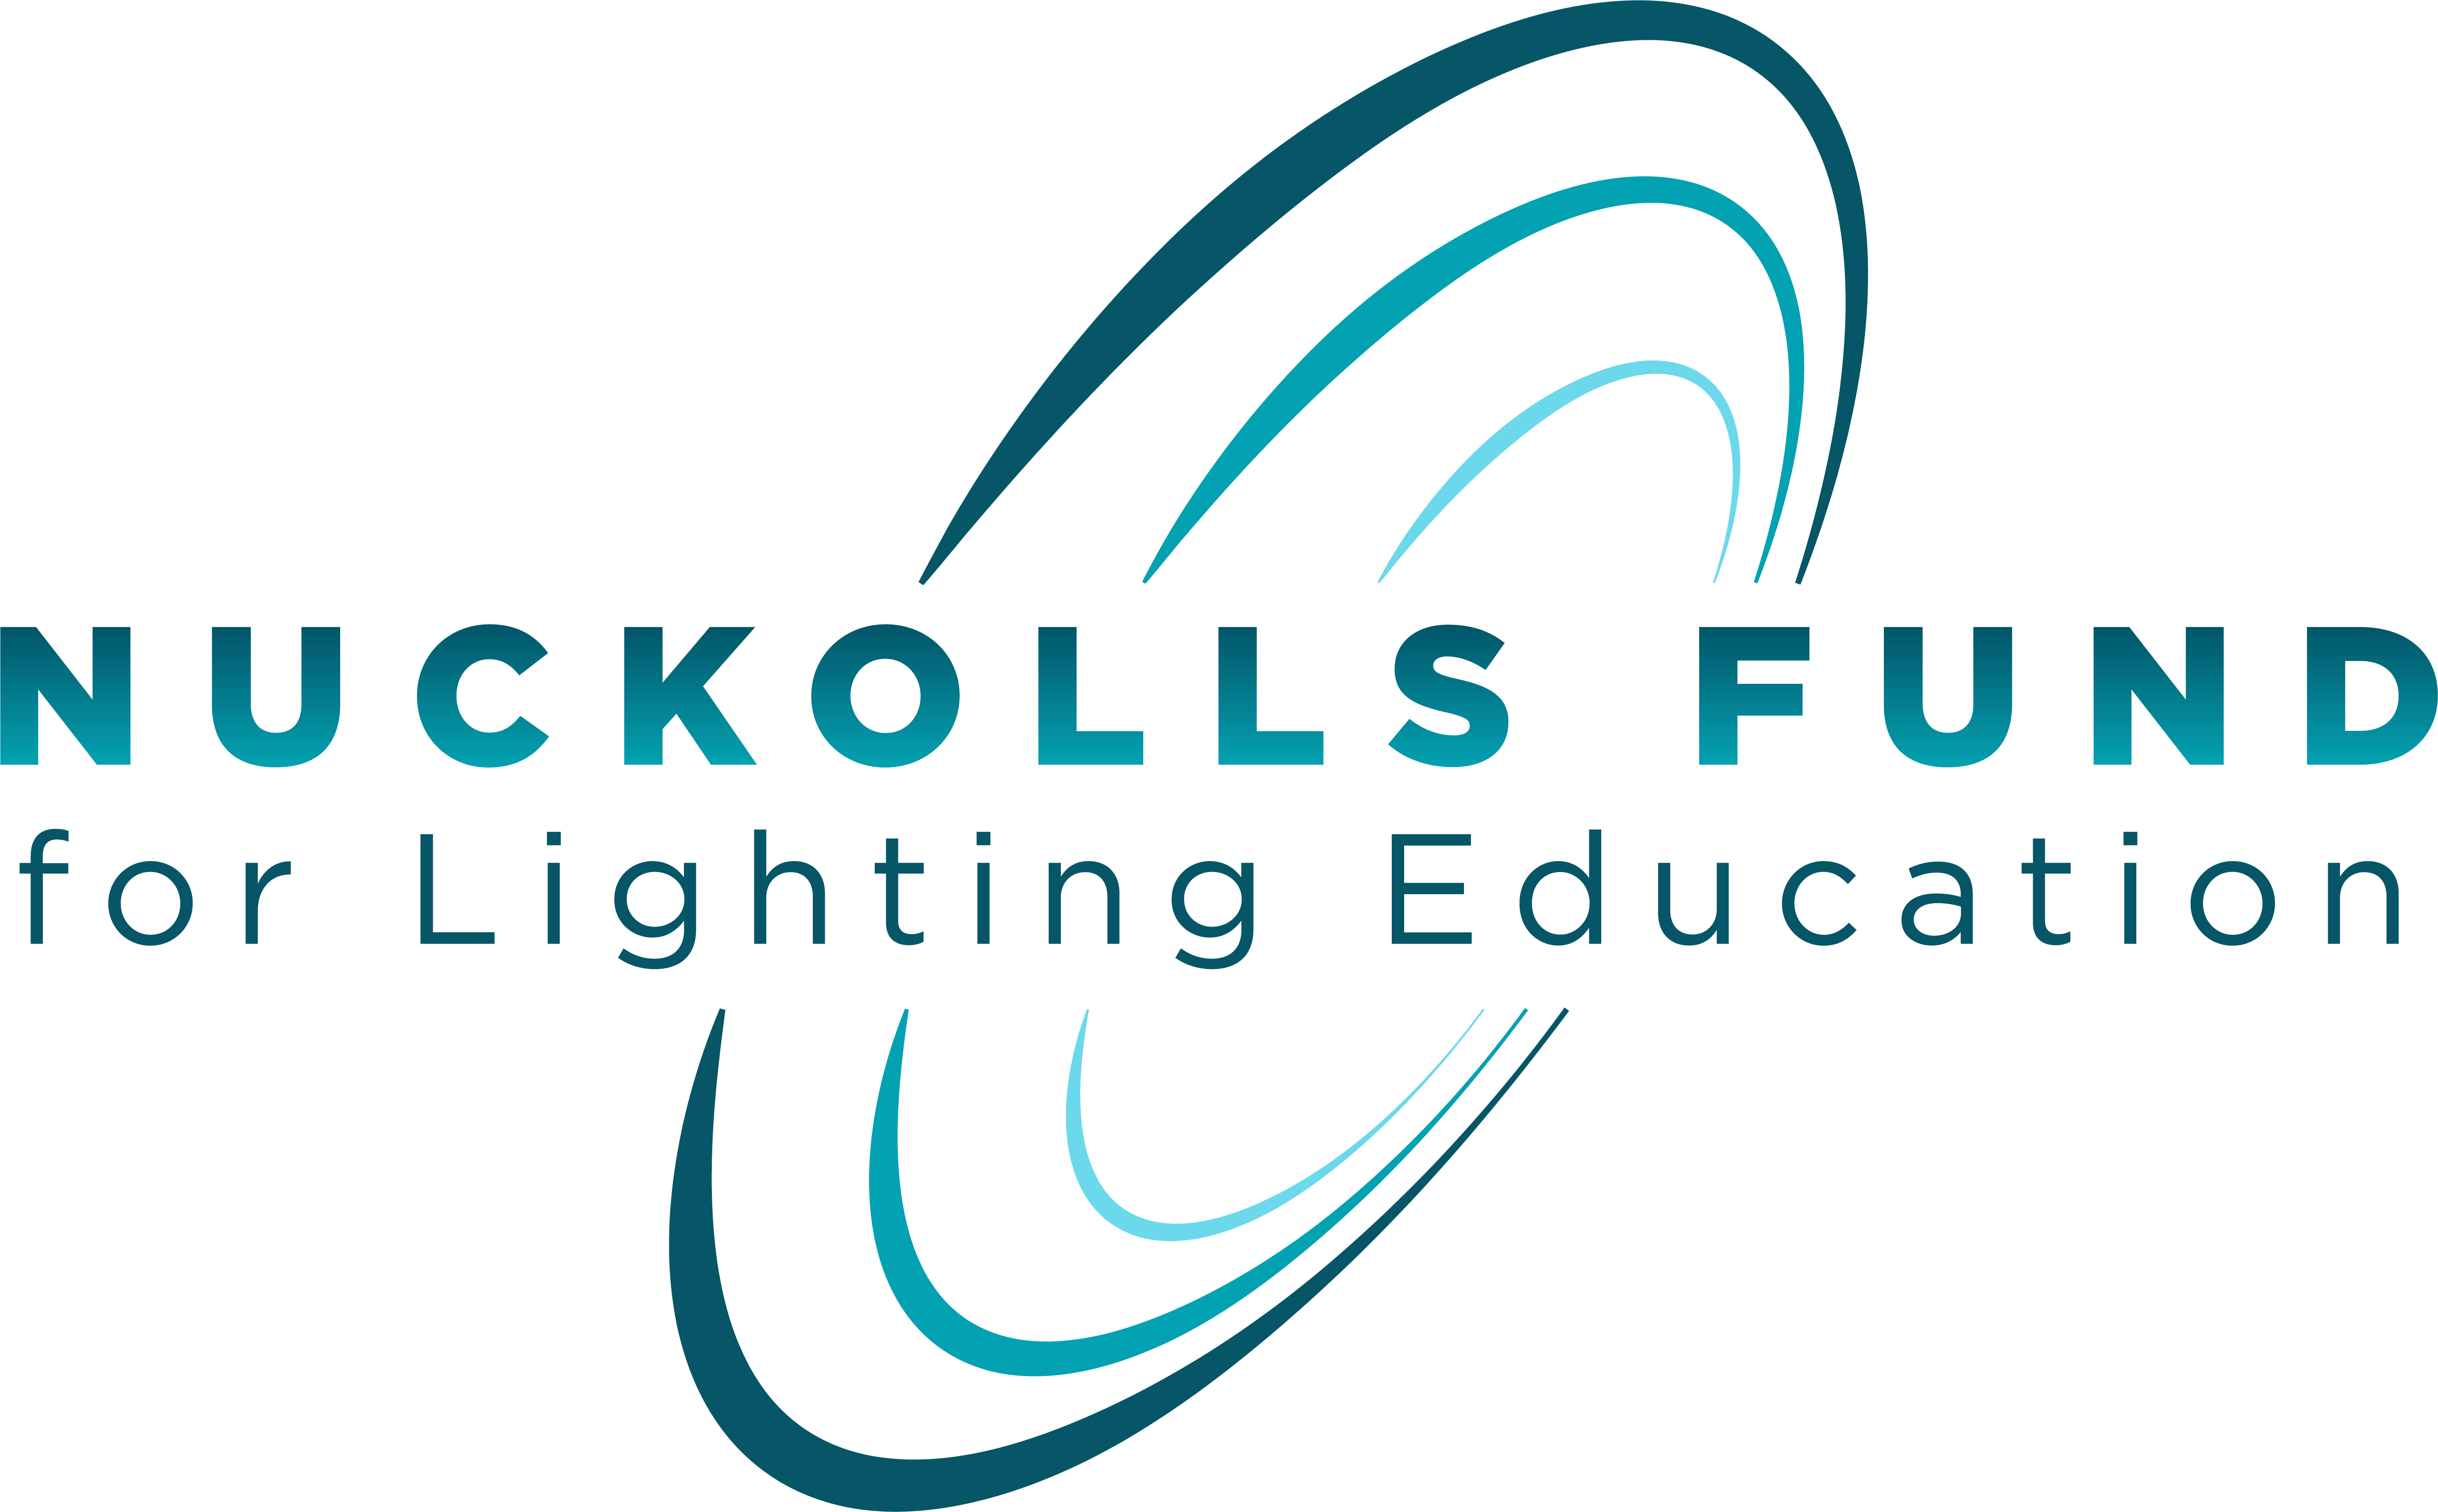 The Nuckolls Fund for Lighting Education